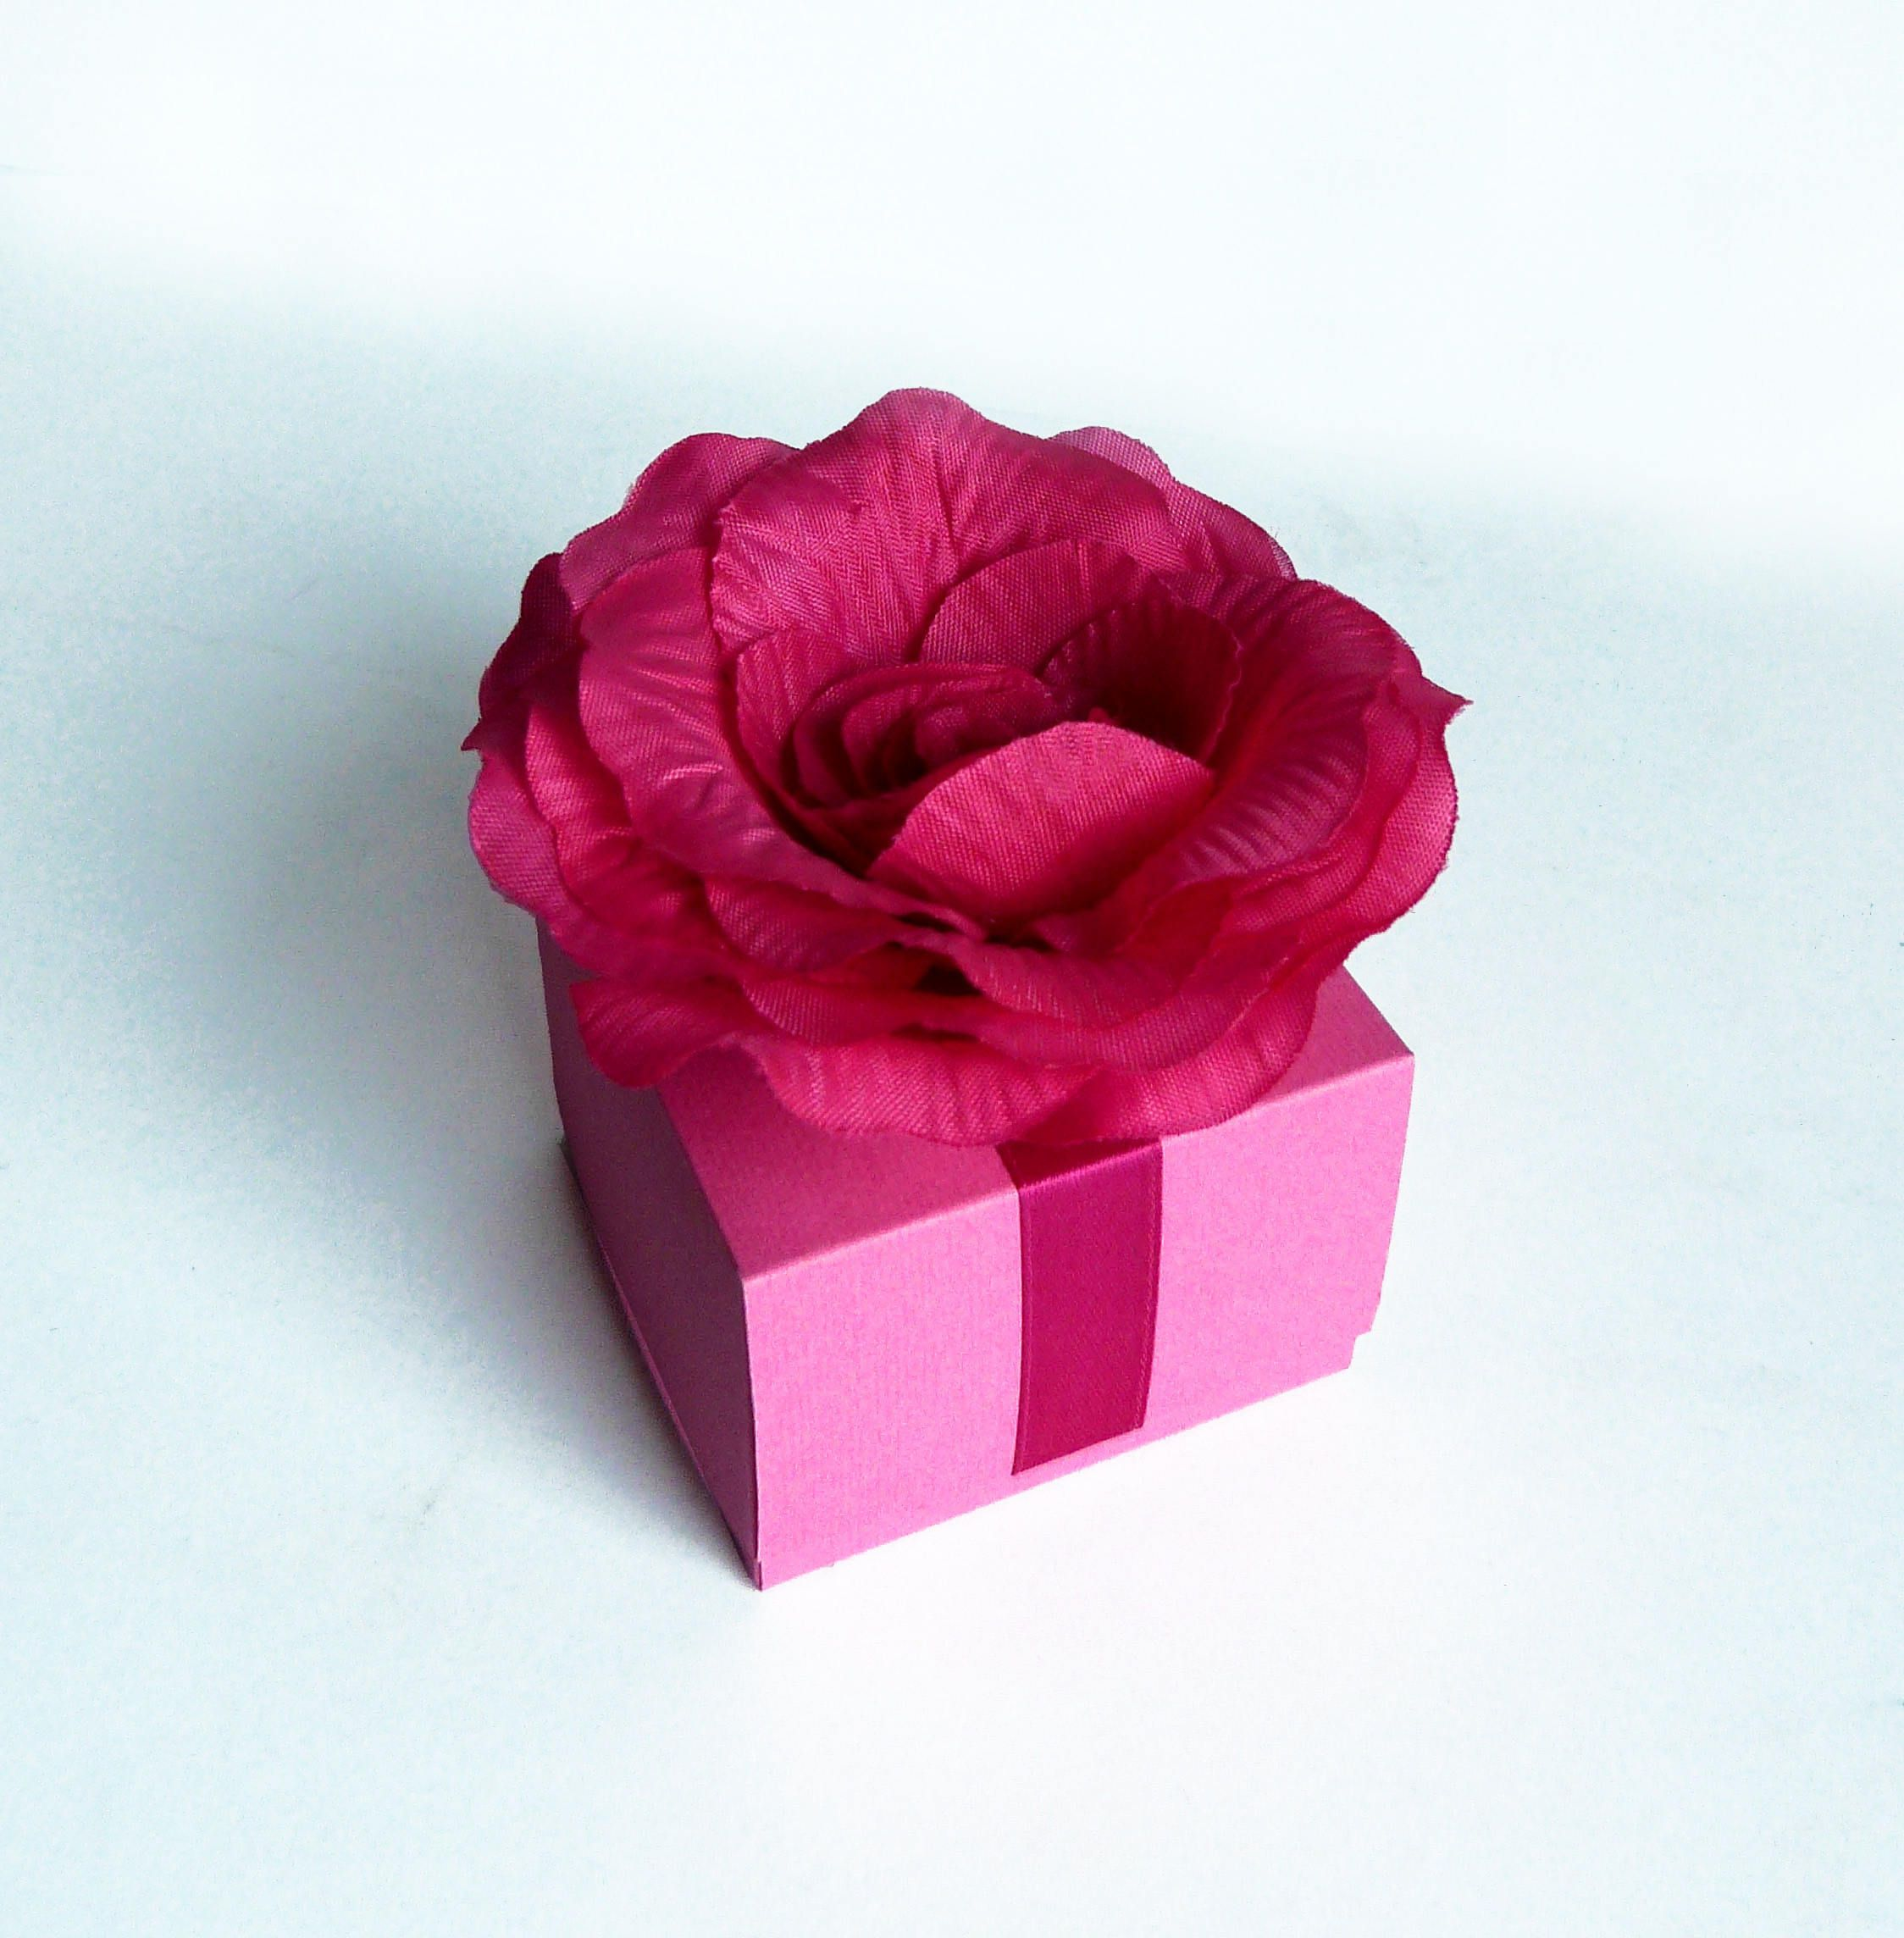 10 pcs Rose Favors boxs,Wedding favor box,Gift box,Favors, Favors ...